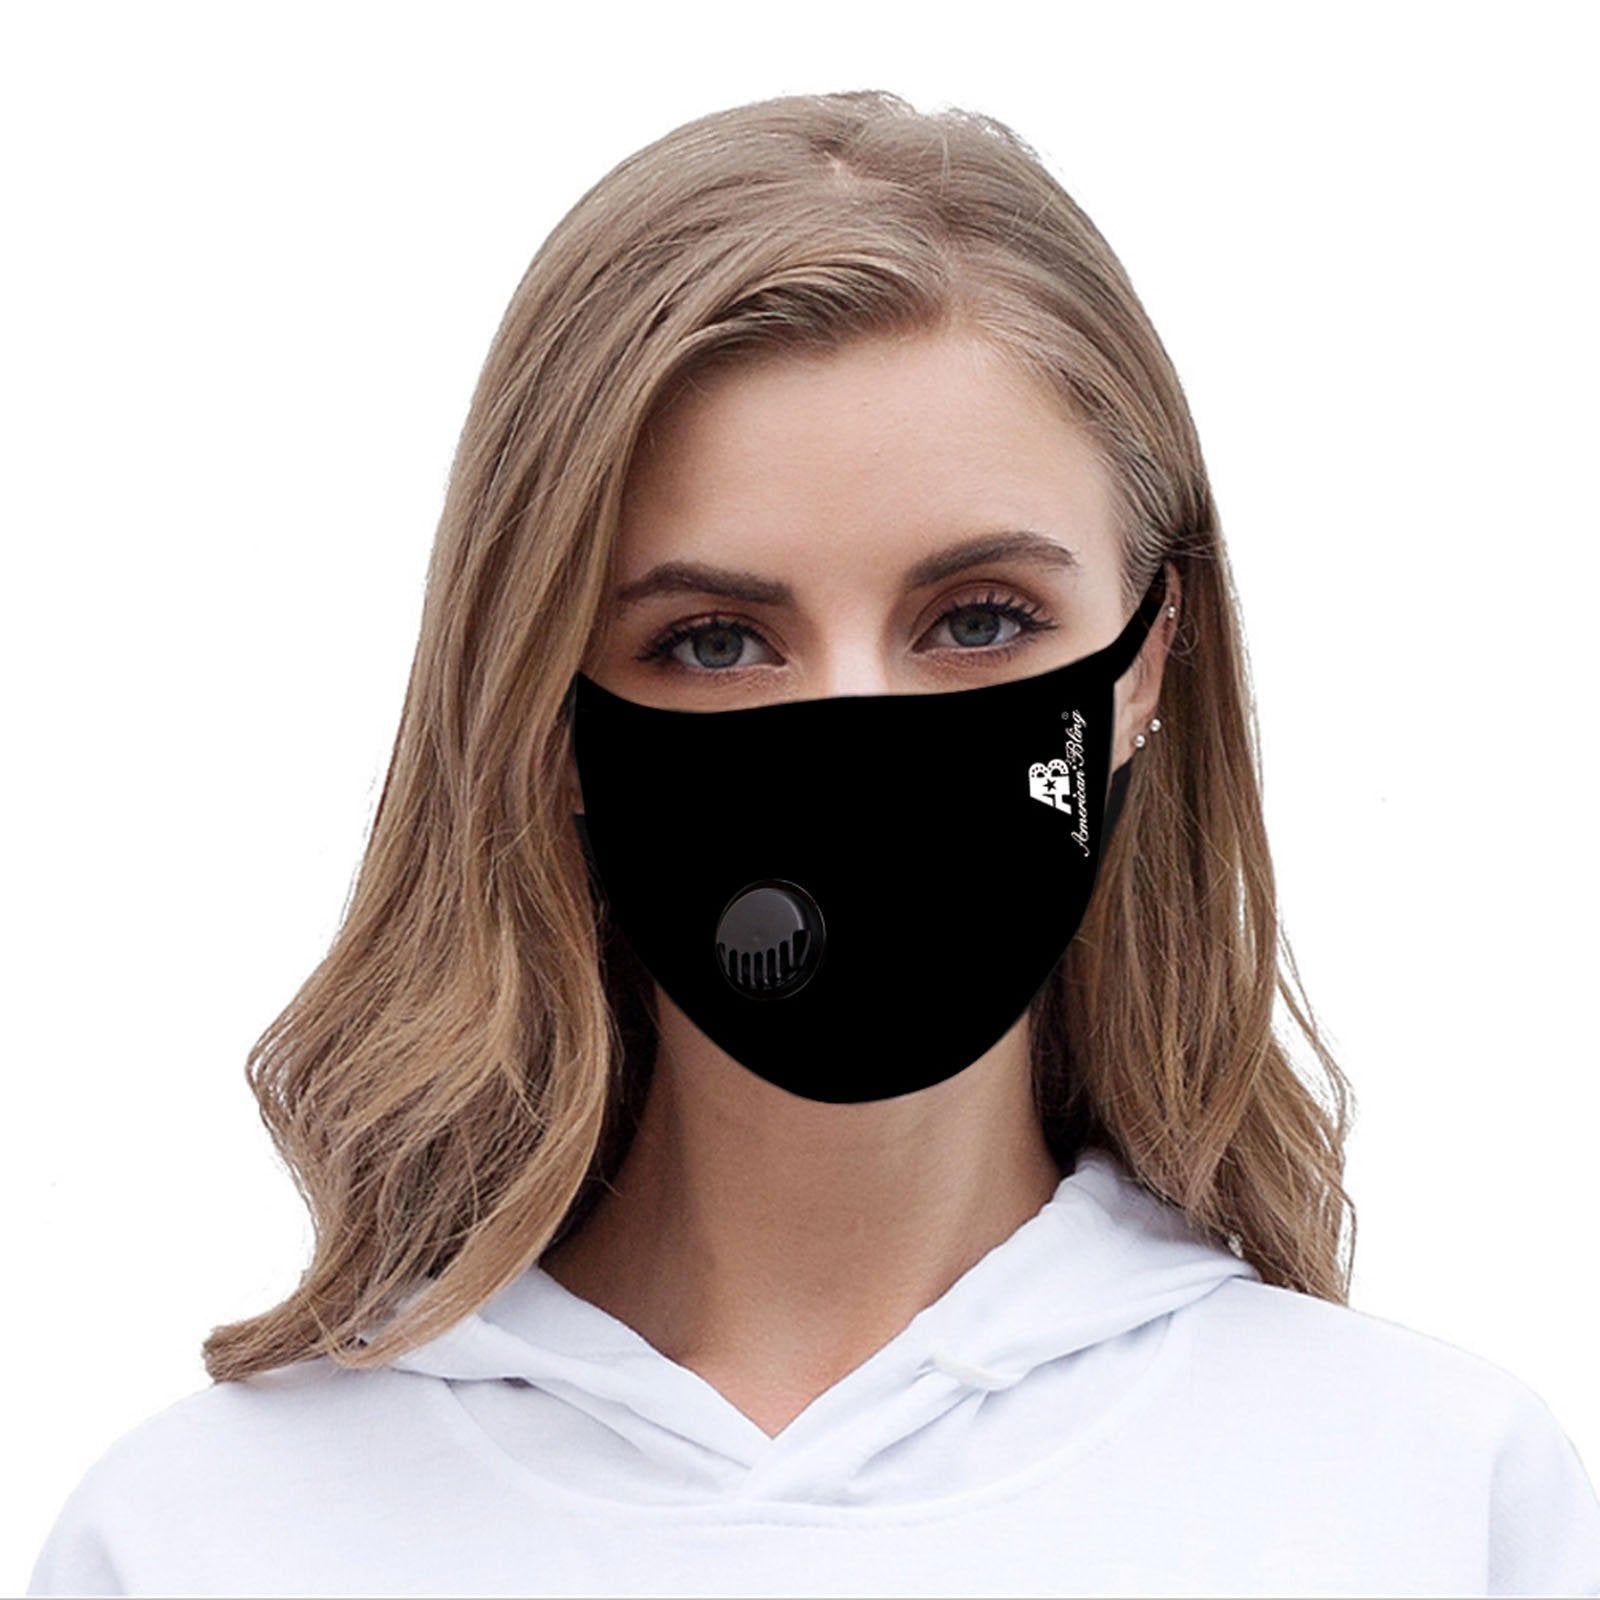 FCM-039R American Bling Single Breathing Valve Fabric Face Mask Double Layer with Adjustable Nose Clip 1PC Pack